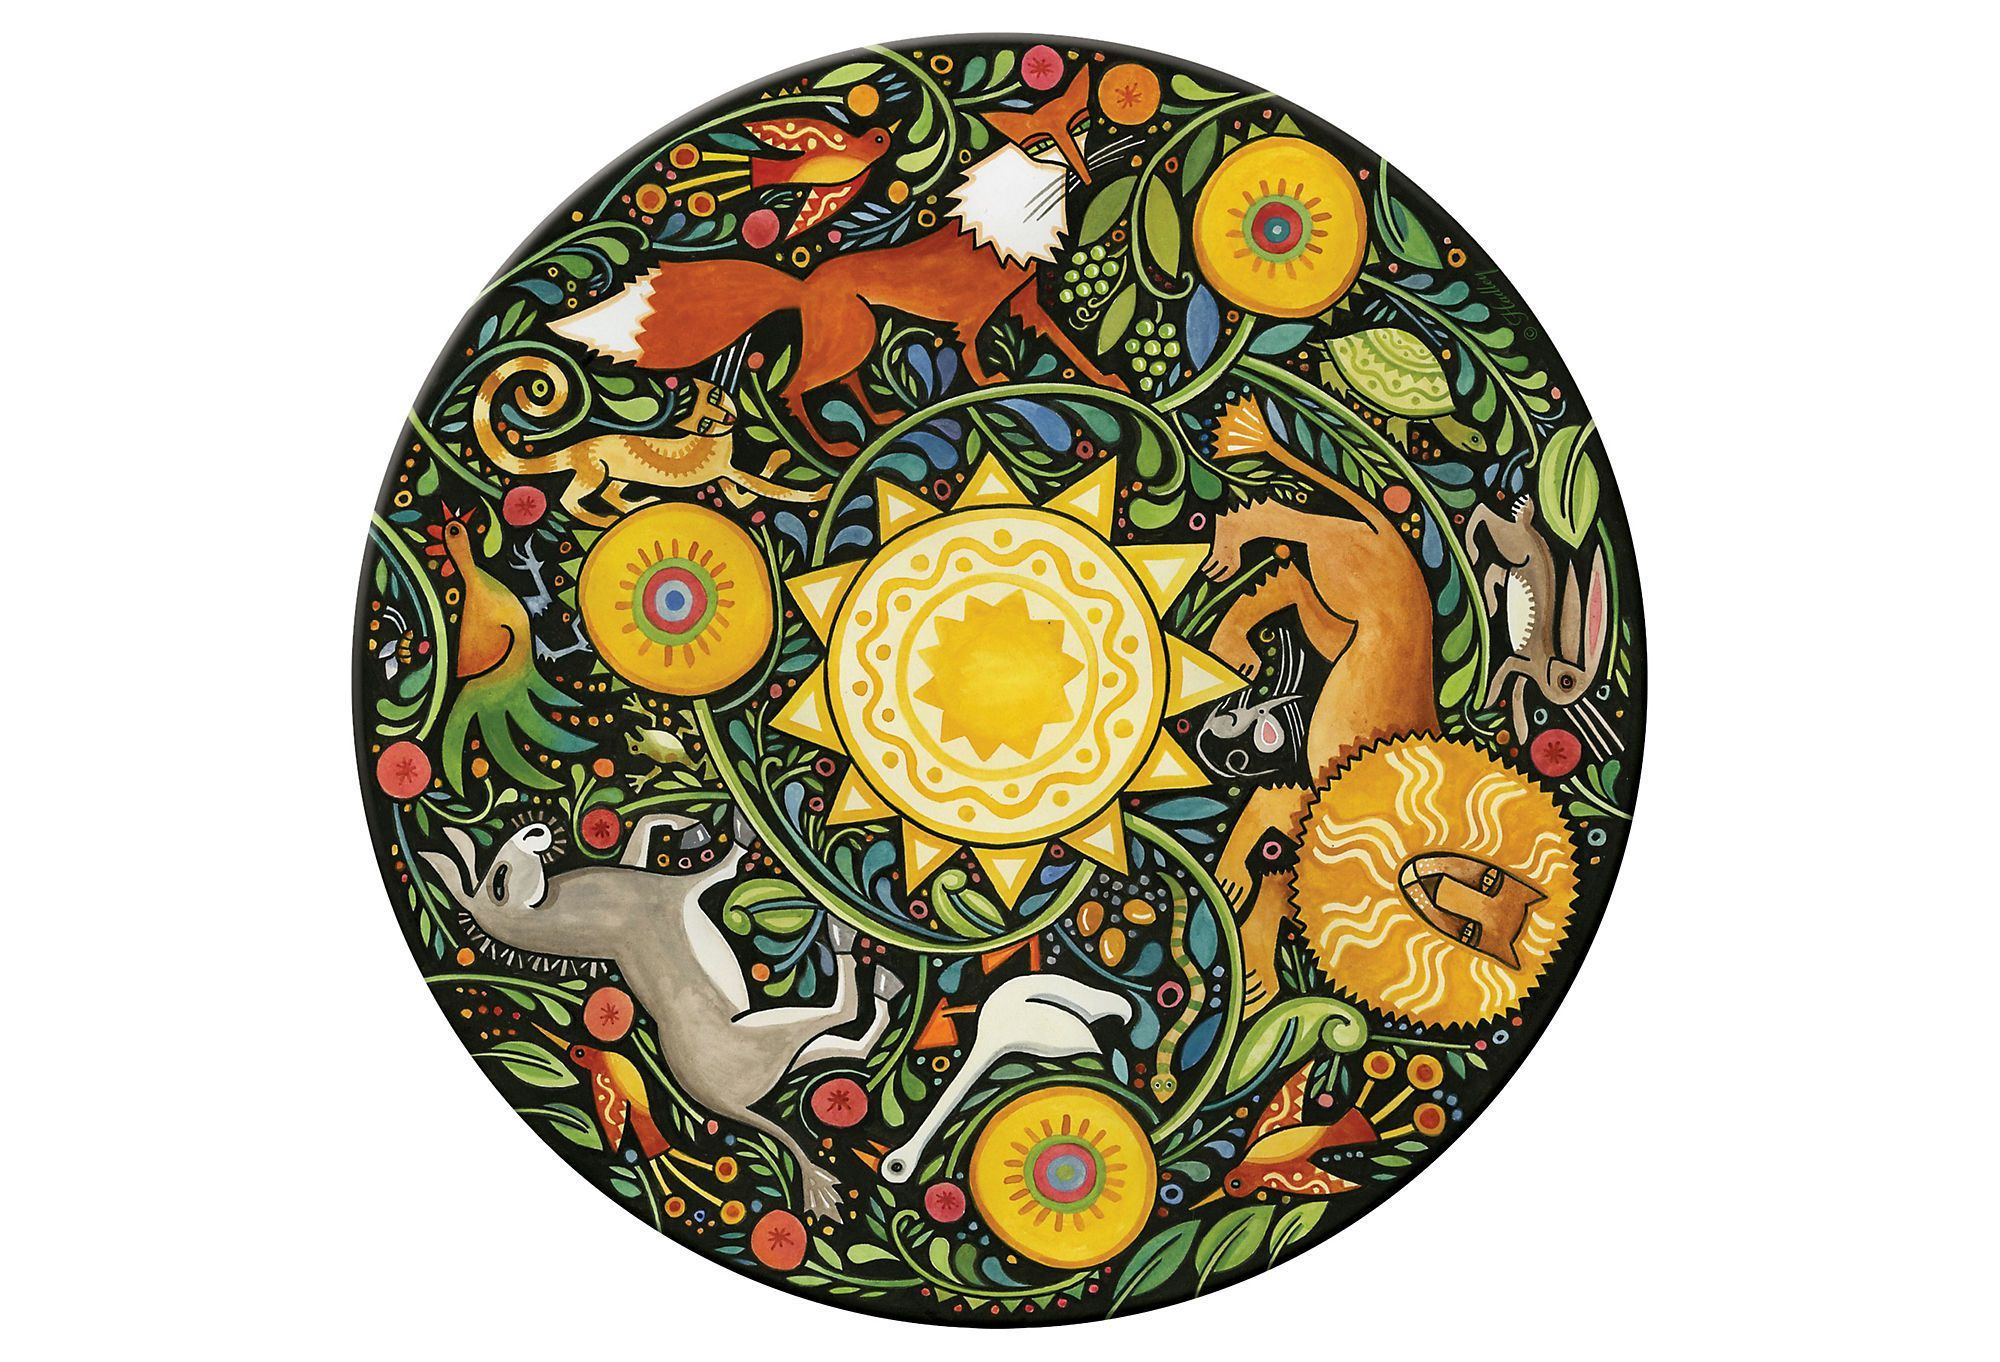 S 4 Aesop S Fables Round Place Mats